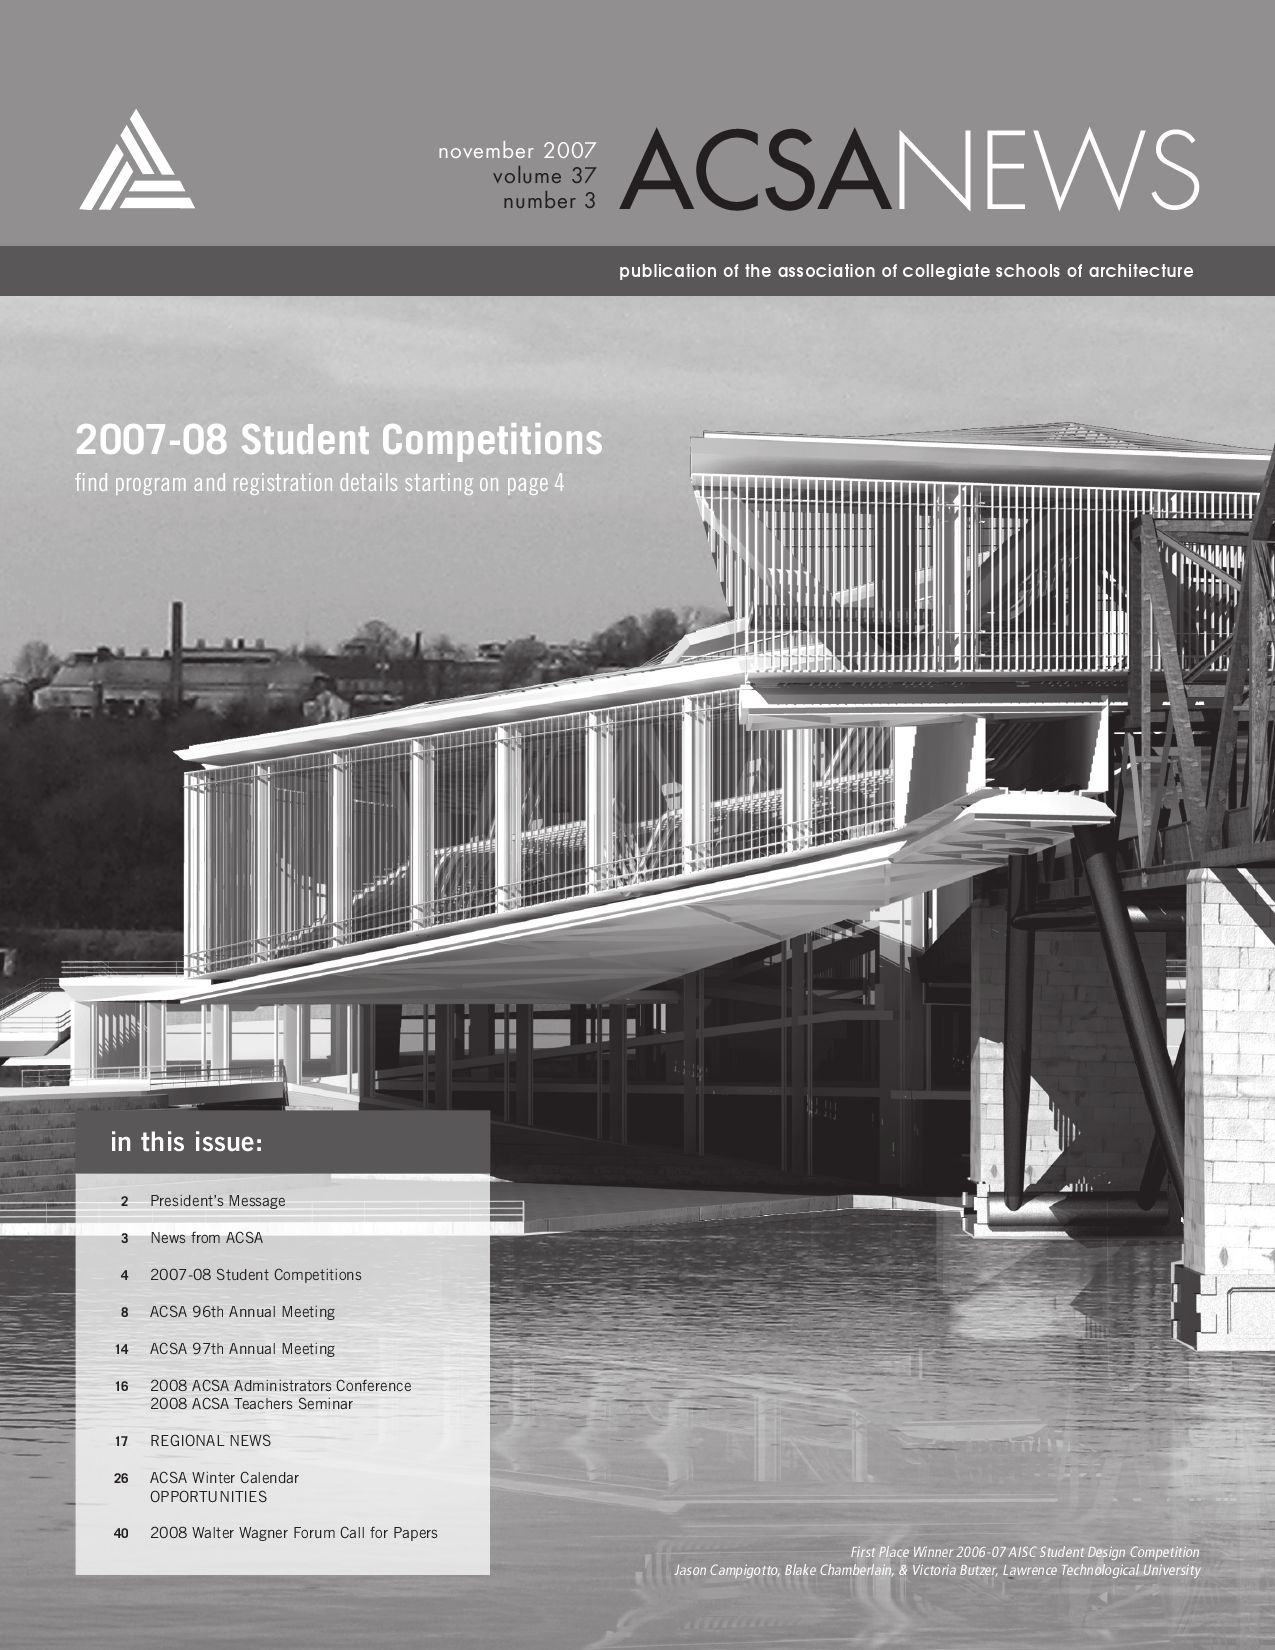 ACSA News November 2007 by Pascale Vonier - issuu